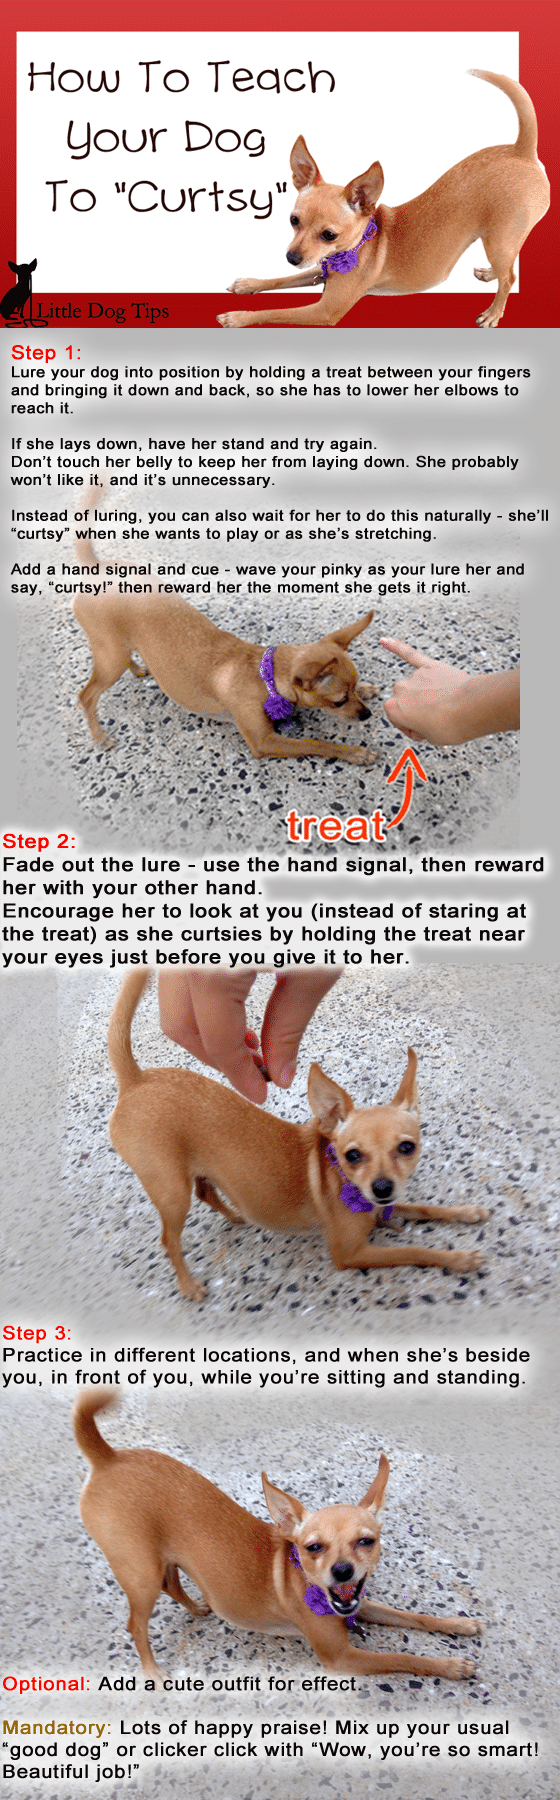 How to teach your dog to curtsy, step by step using #positivereinforcement, with help from Matilda the minipin-chihuahua.